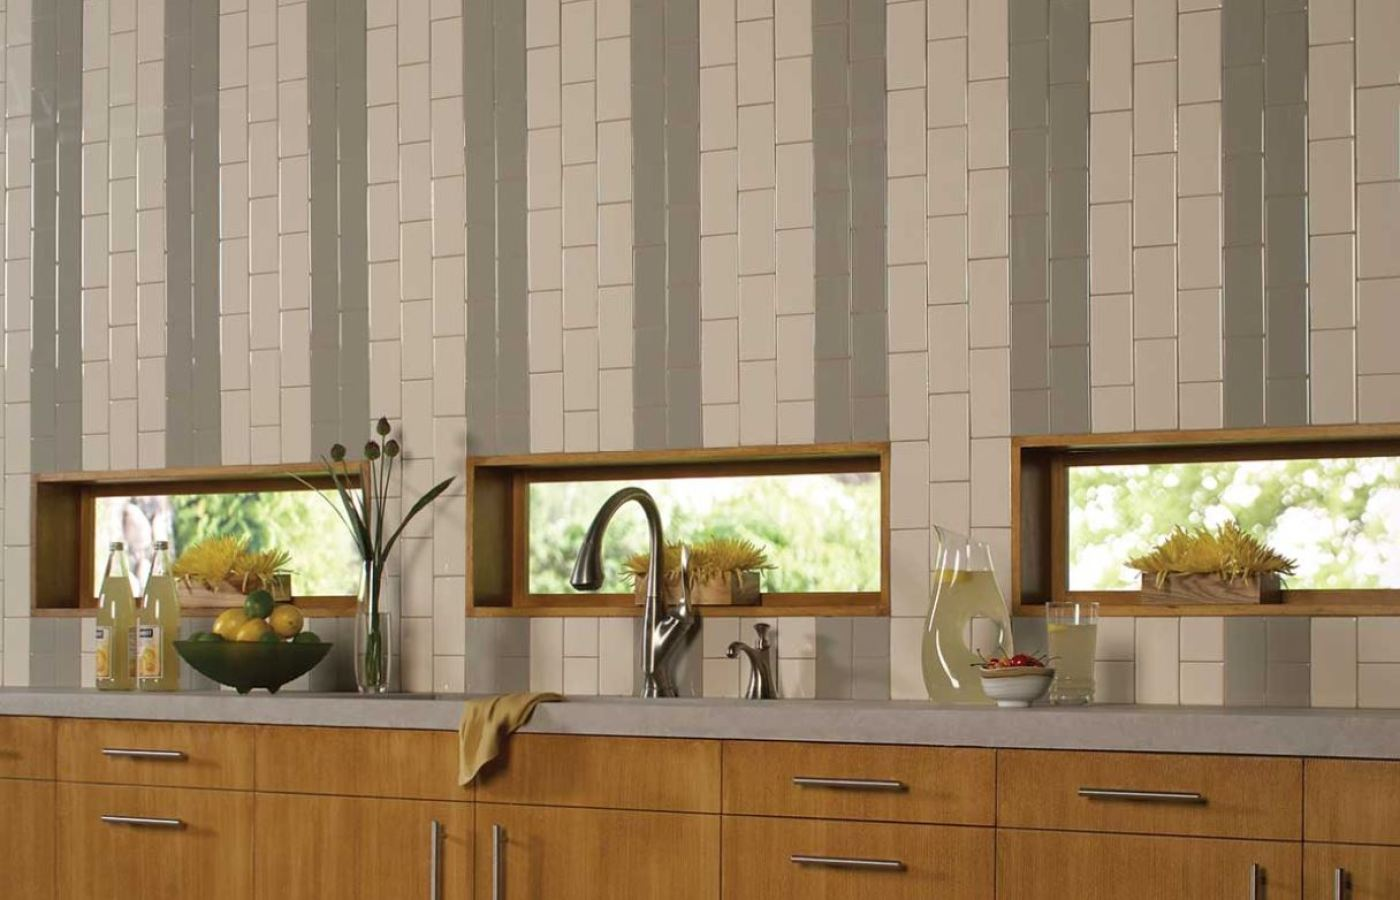 Daltile Rittenhouse Square Subway Tiles available at Custom Home Interiors!